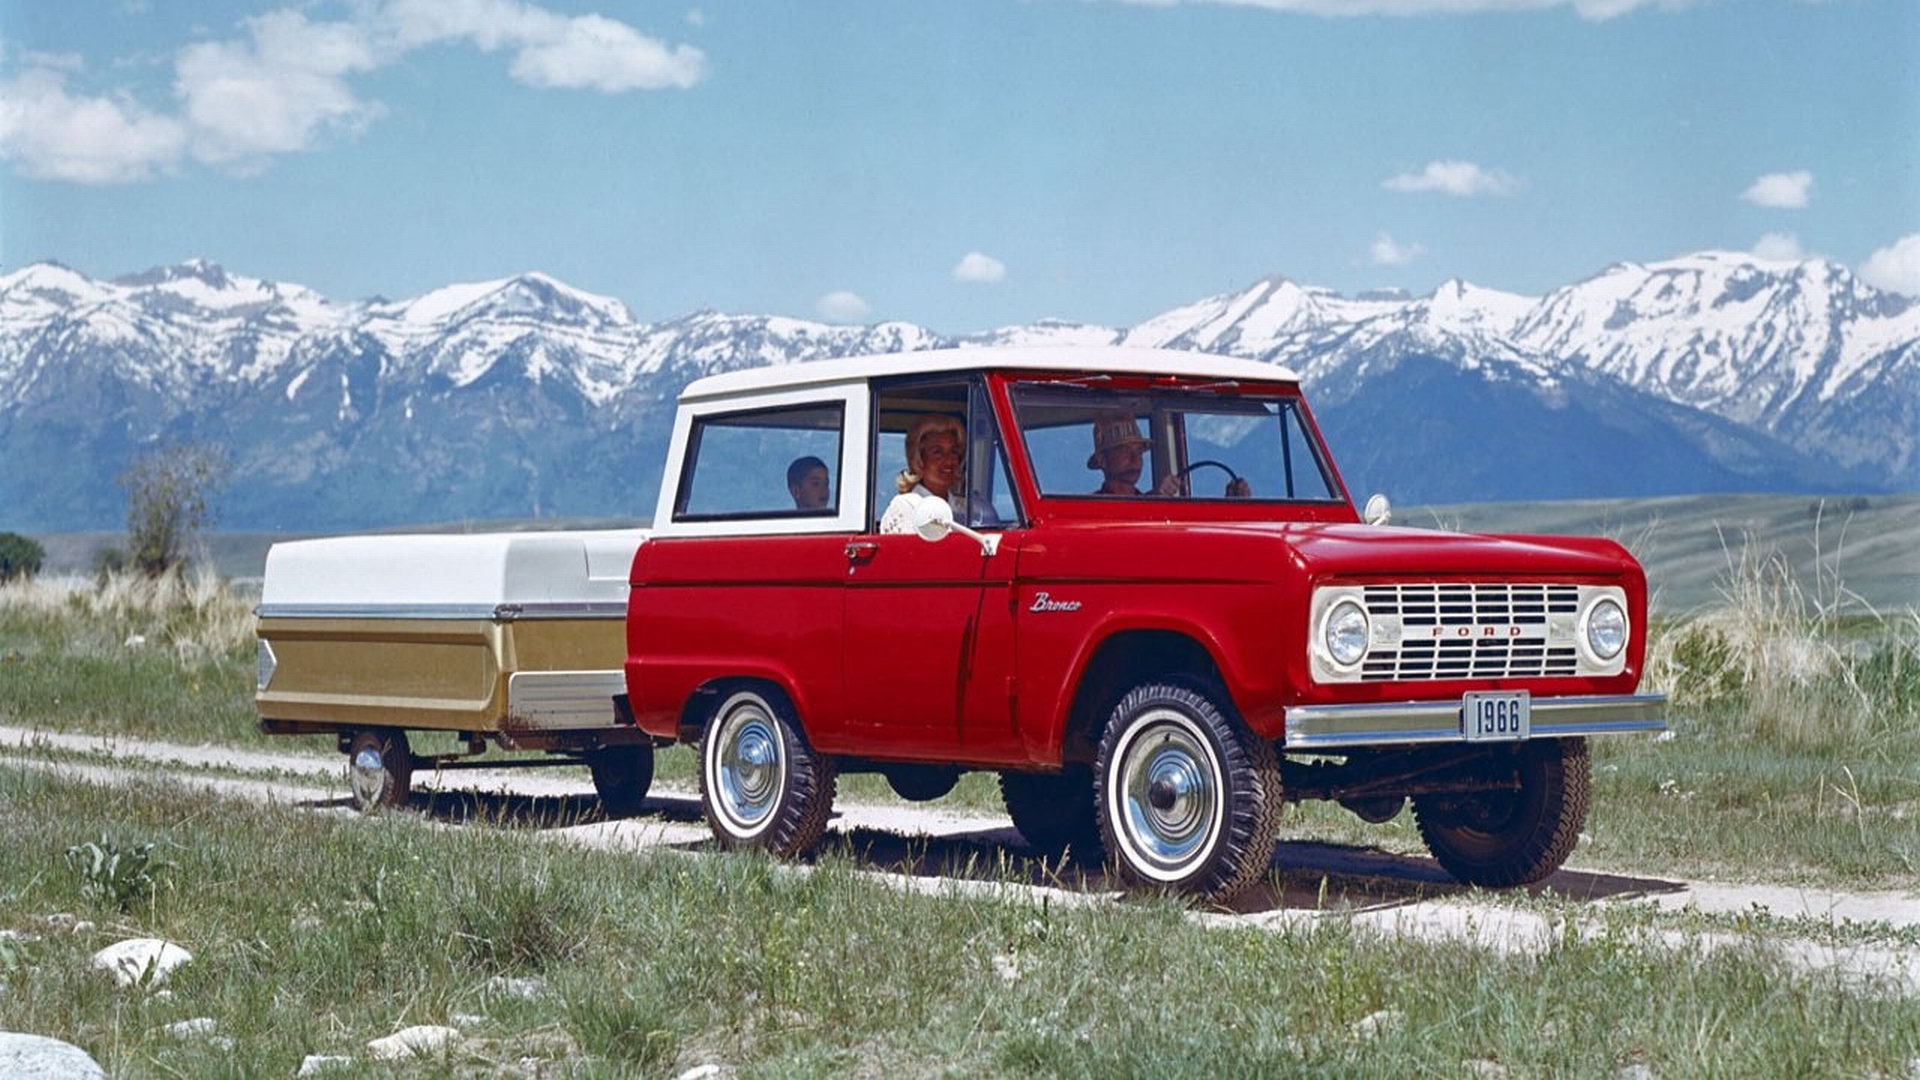 Ford Bronco HD Wallpaper | Background Image | 1920x1080 ...